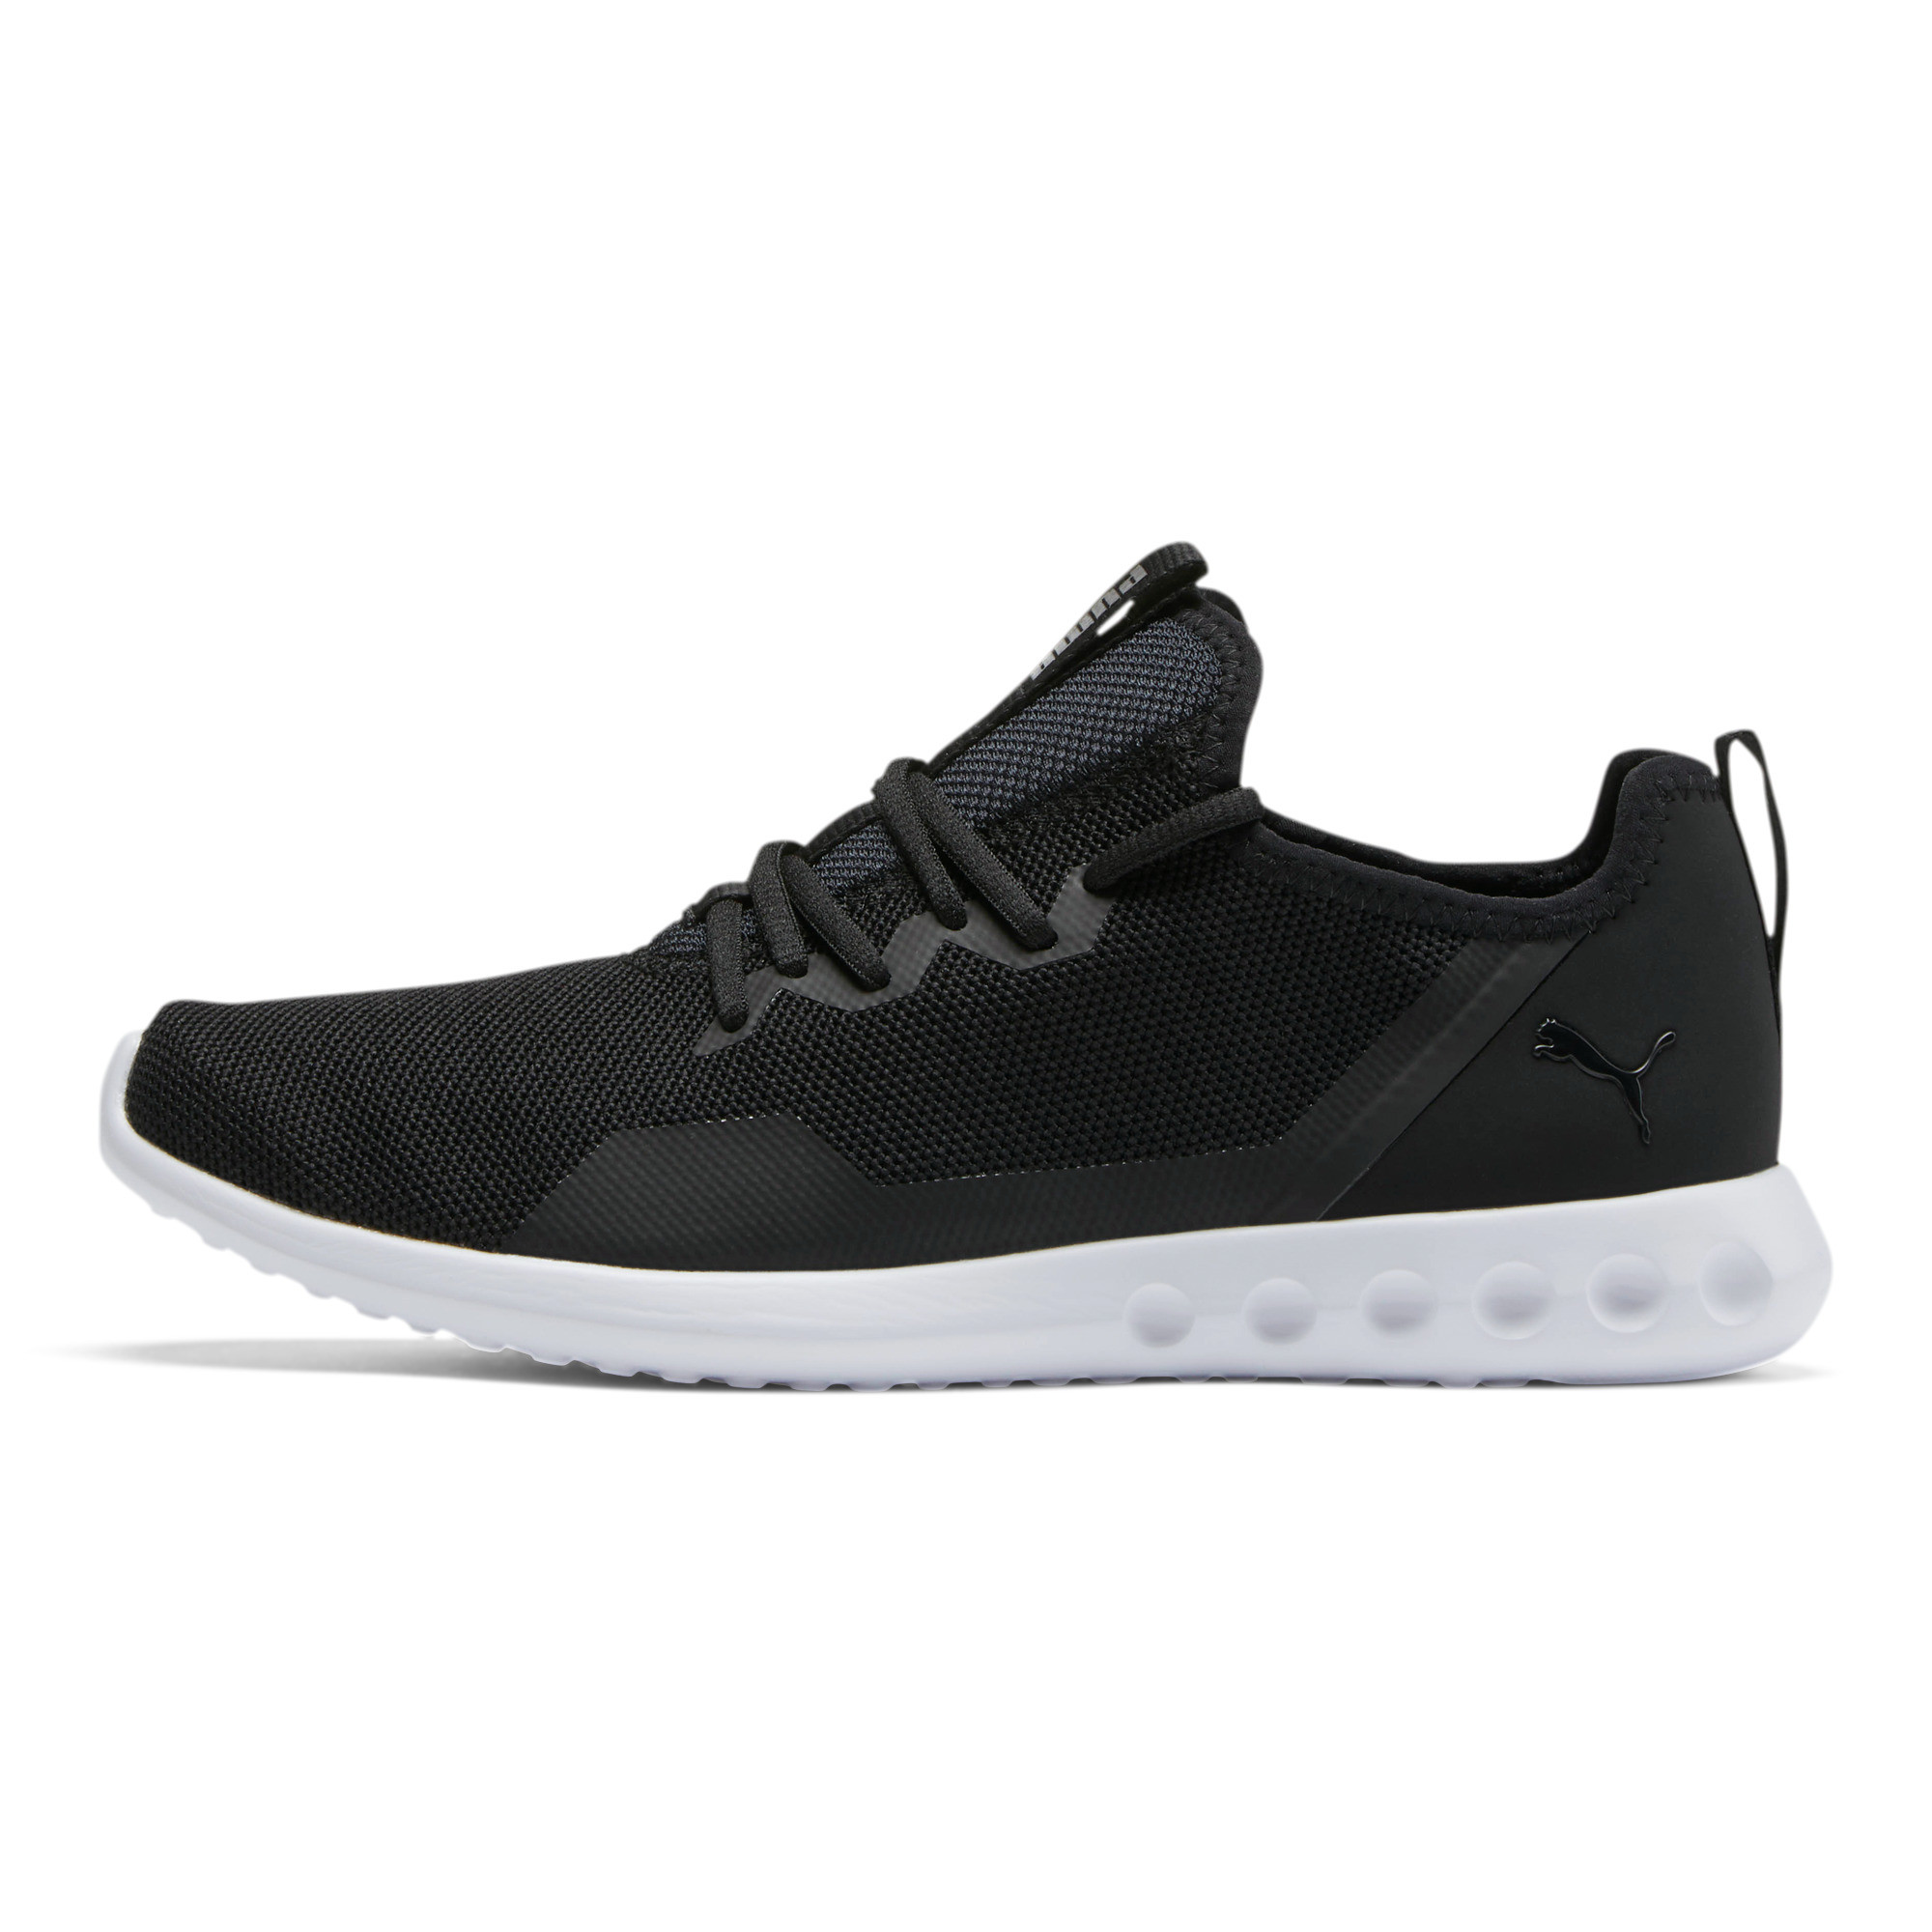 PUMA-Carson-2-X-Knit-Men-039-s-Running-Shoes-Men-Shoe-Running thumbnail 34